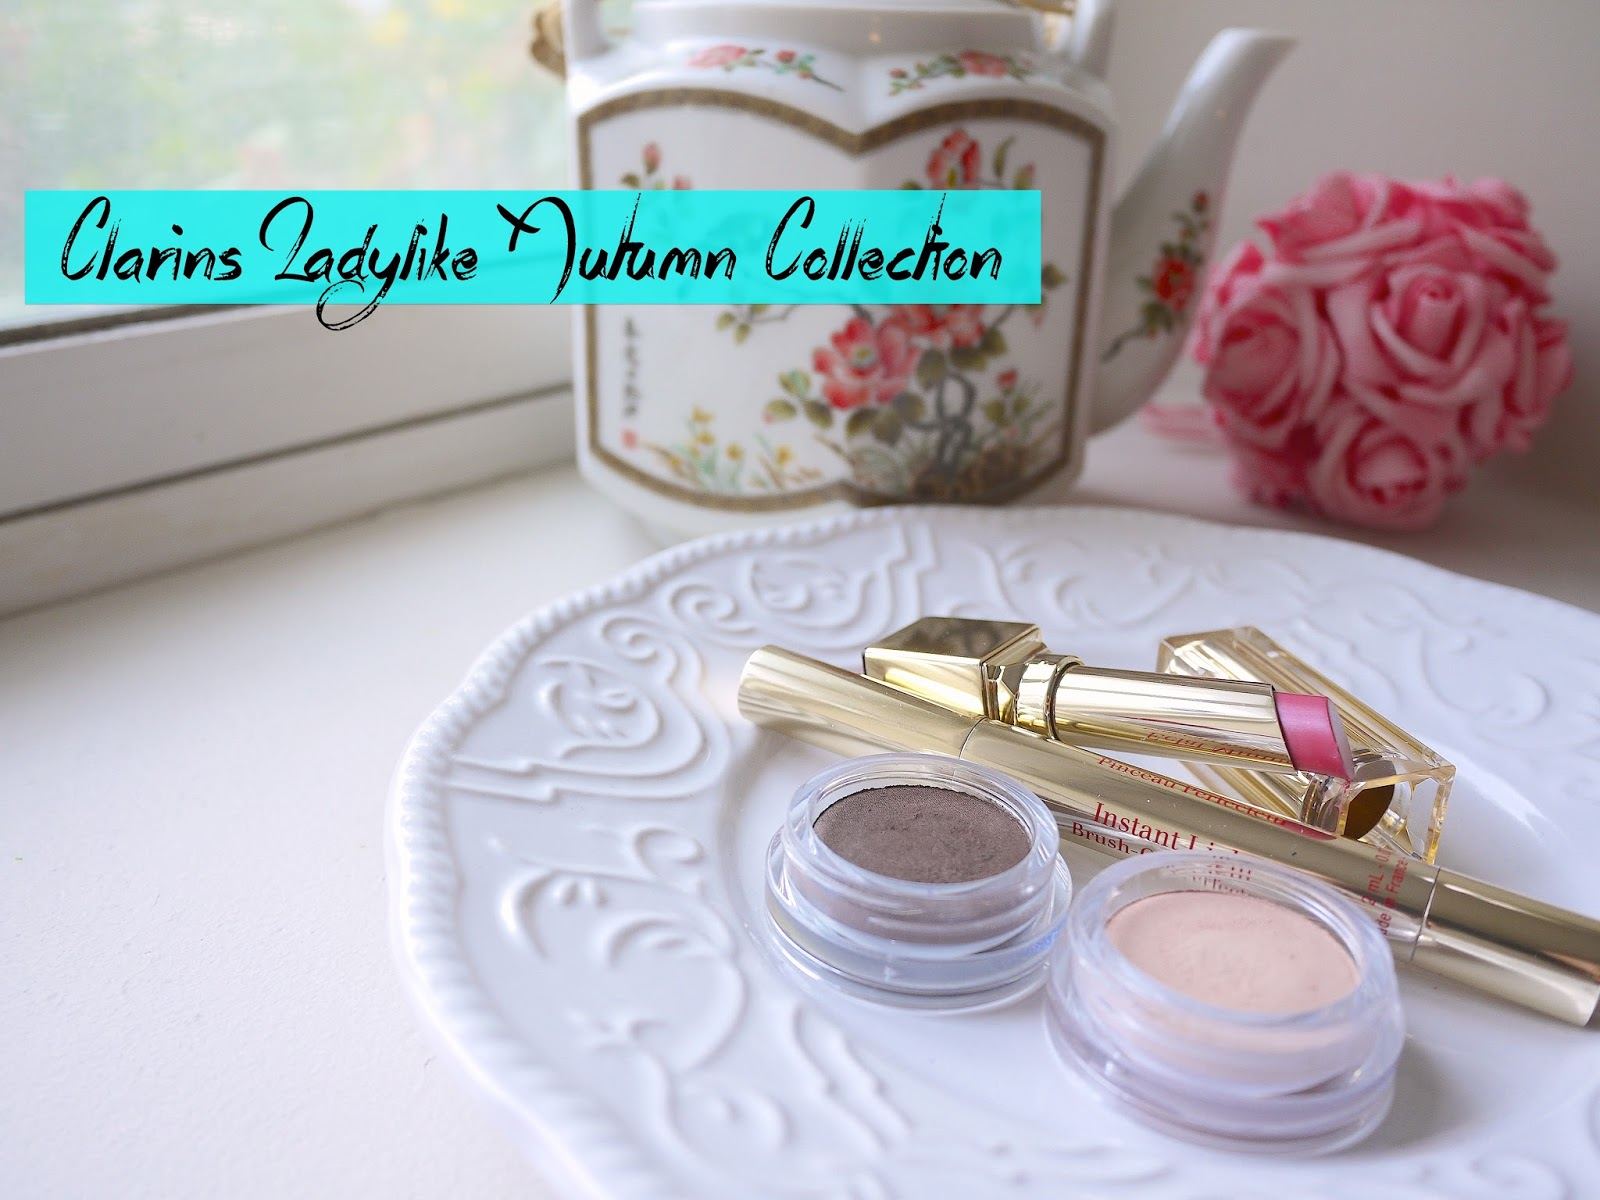 Clarins Ladylike 2014 Autumn MakeUp Collection nude pink earth candy rose swatch review